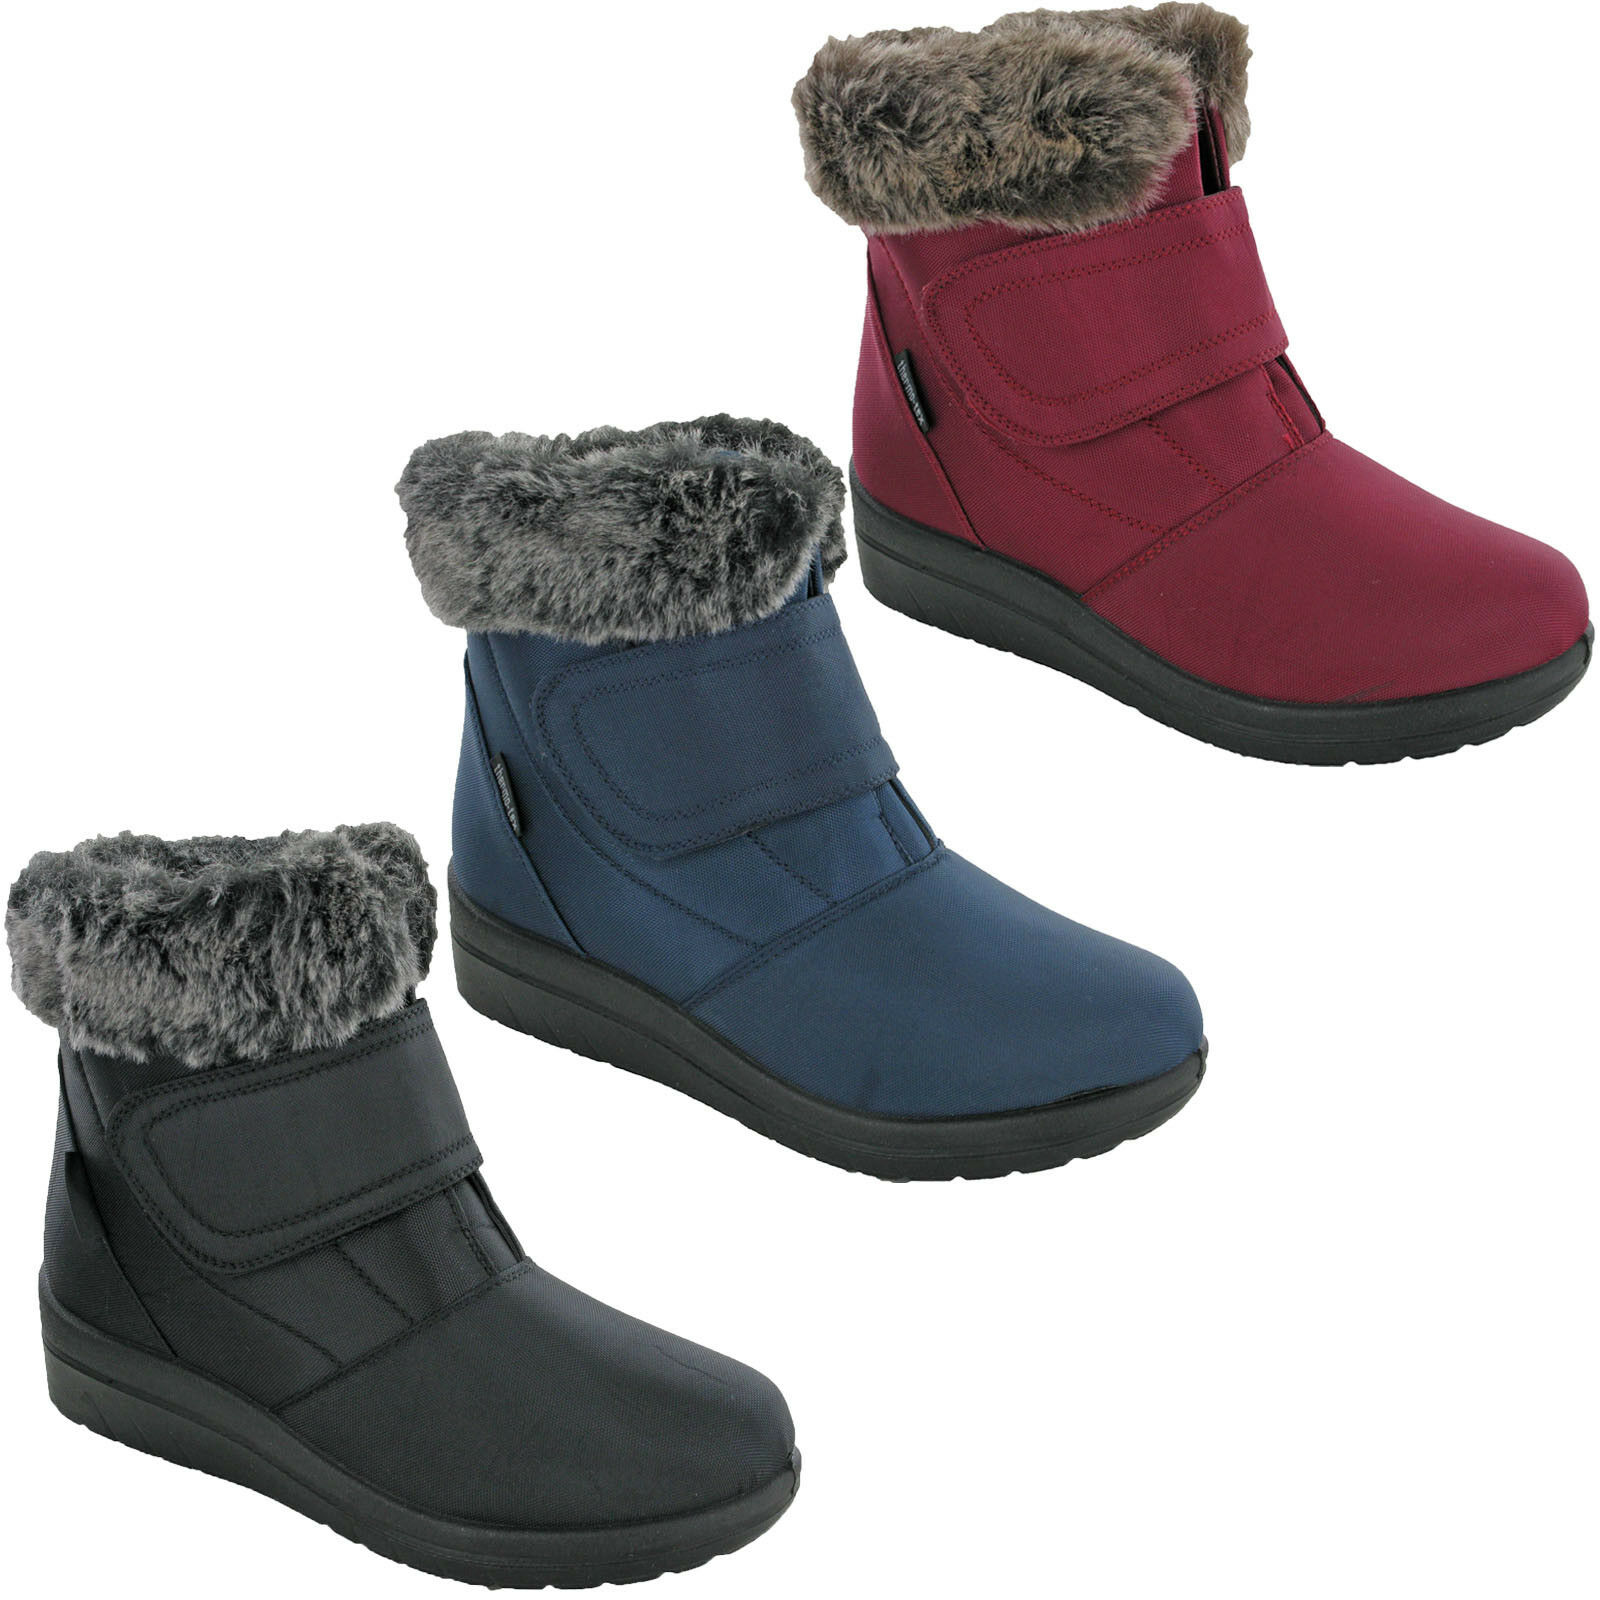 38e3dc26275 Details about Womens Winter Boots Thermo Tex Snow Cushion Walk Warm Fur  Lined Shoes UK 4-8